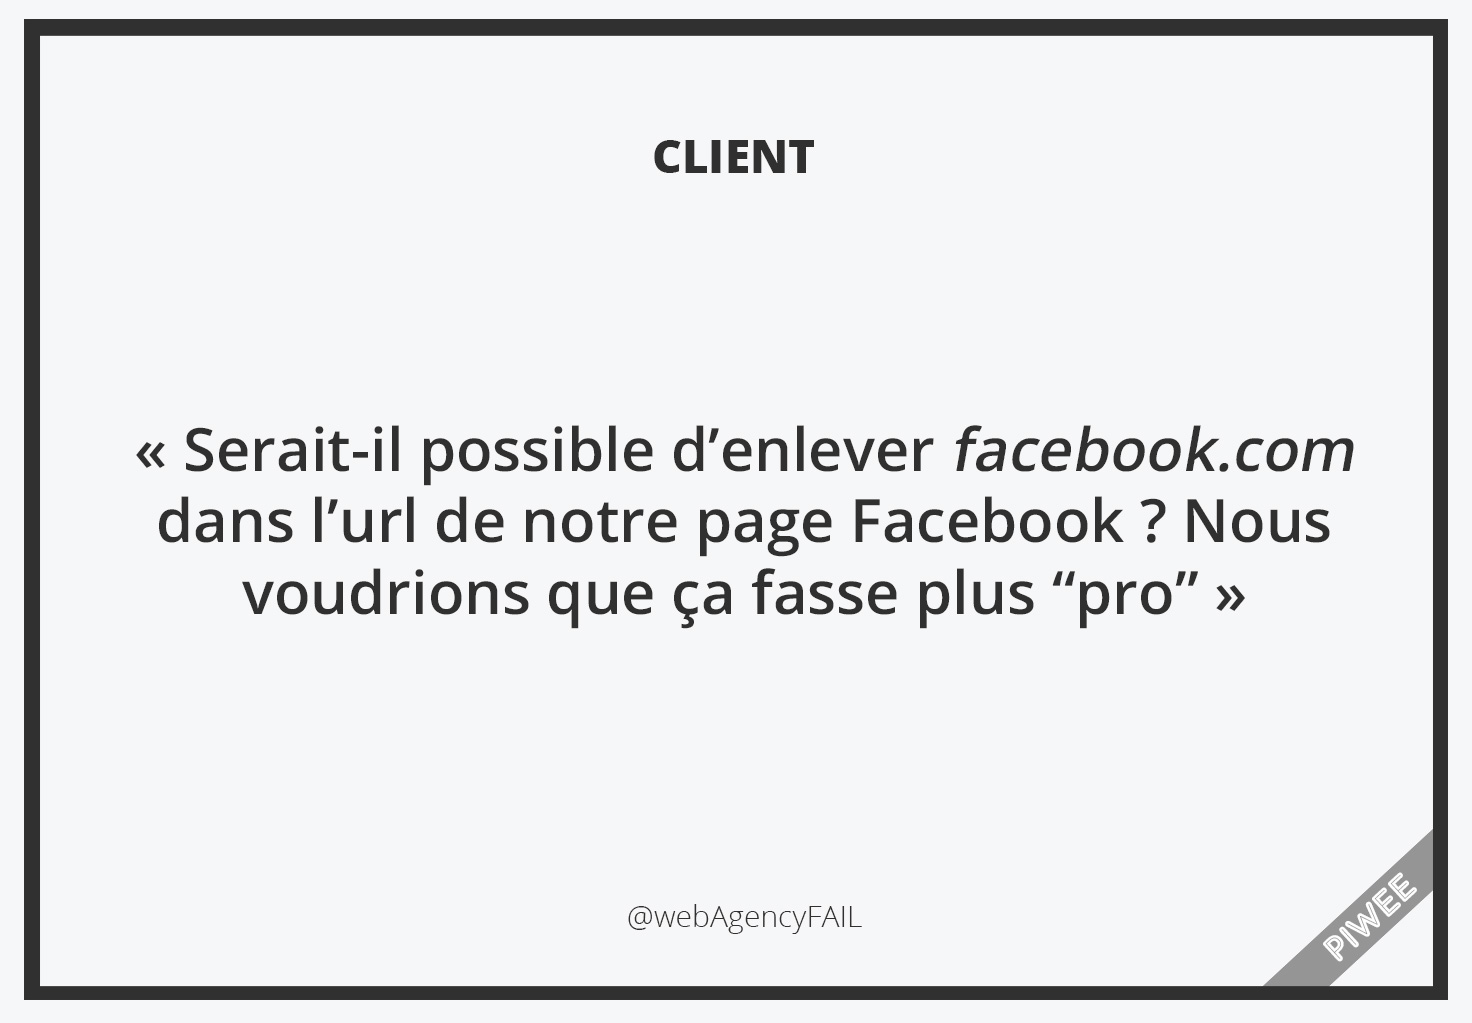 phrases-insolite-client-agence-web-10